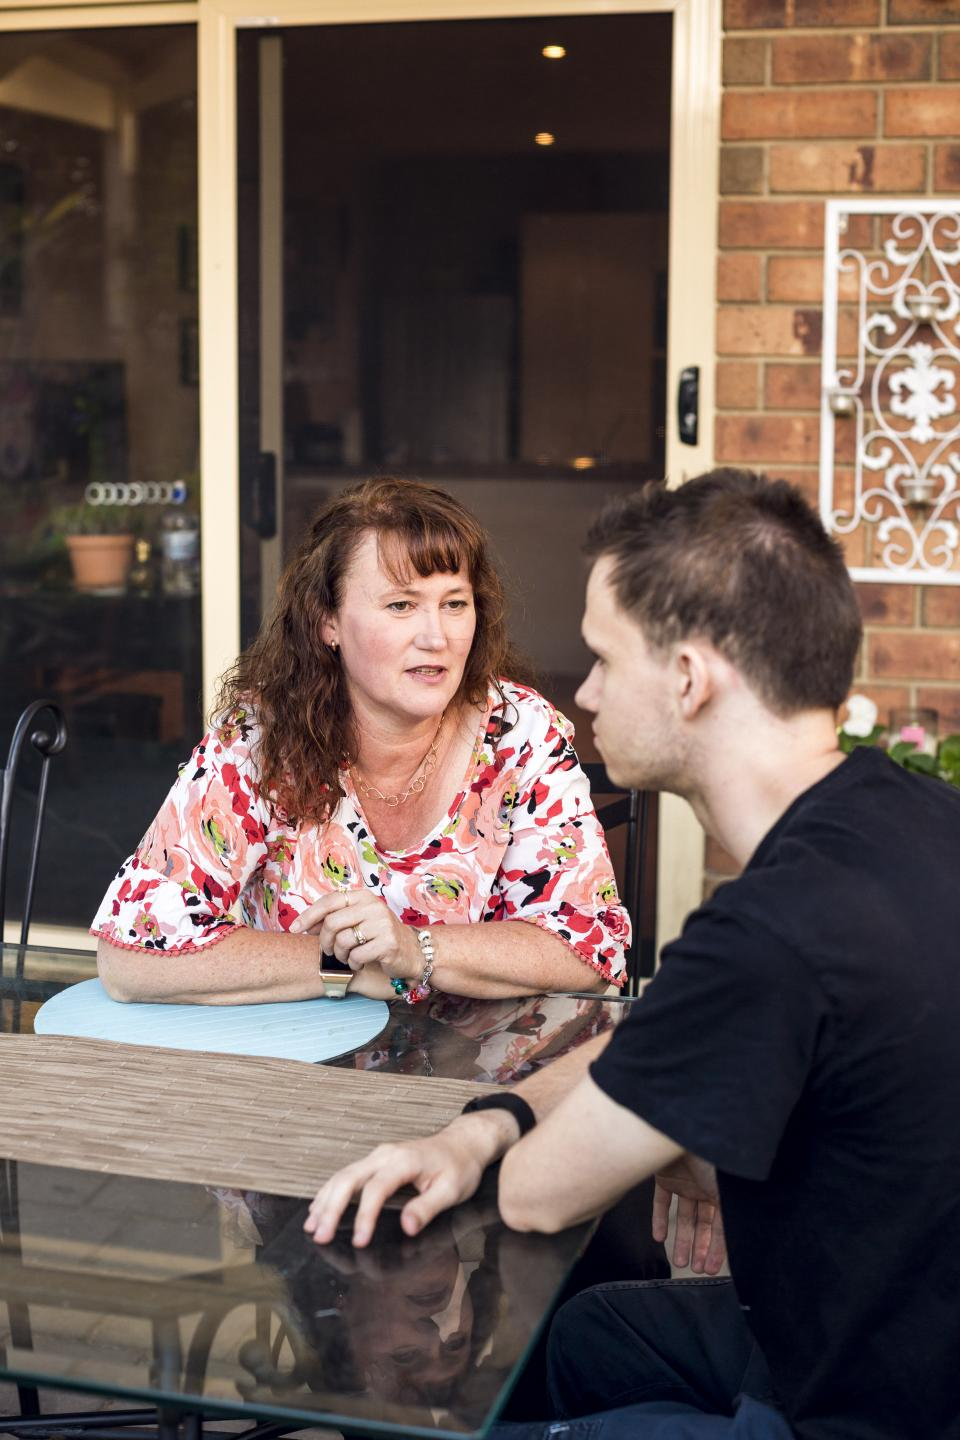 Young person having discussion with parent at garden table